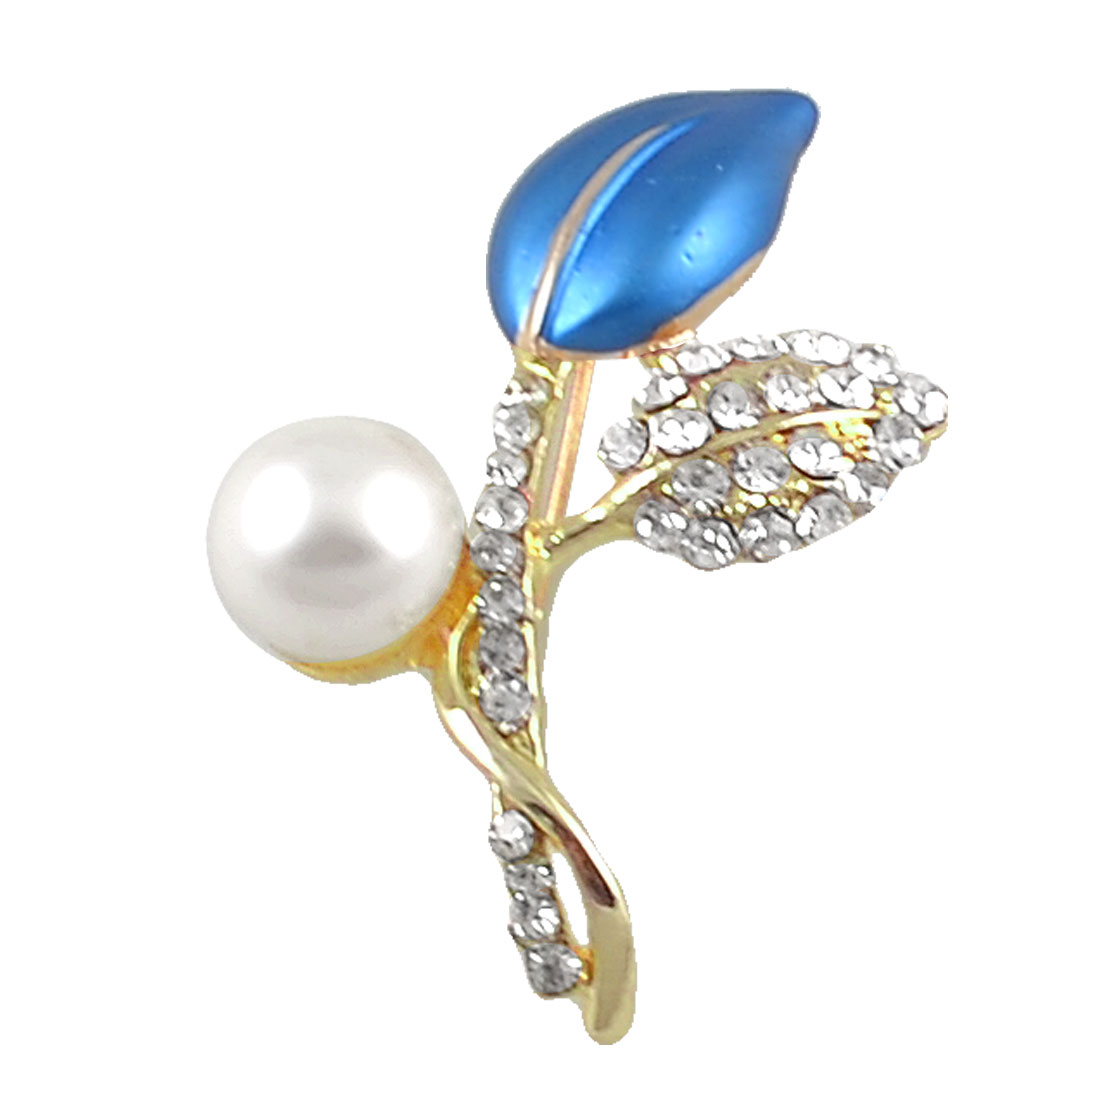 White Faux Pearl Detail Royal Blue Leave Shape Pin Closure Brooch for Lady